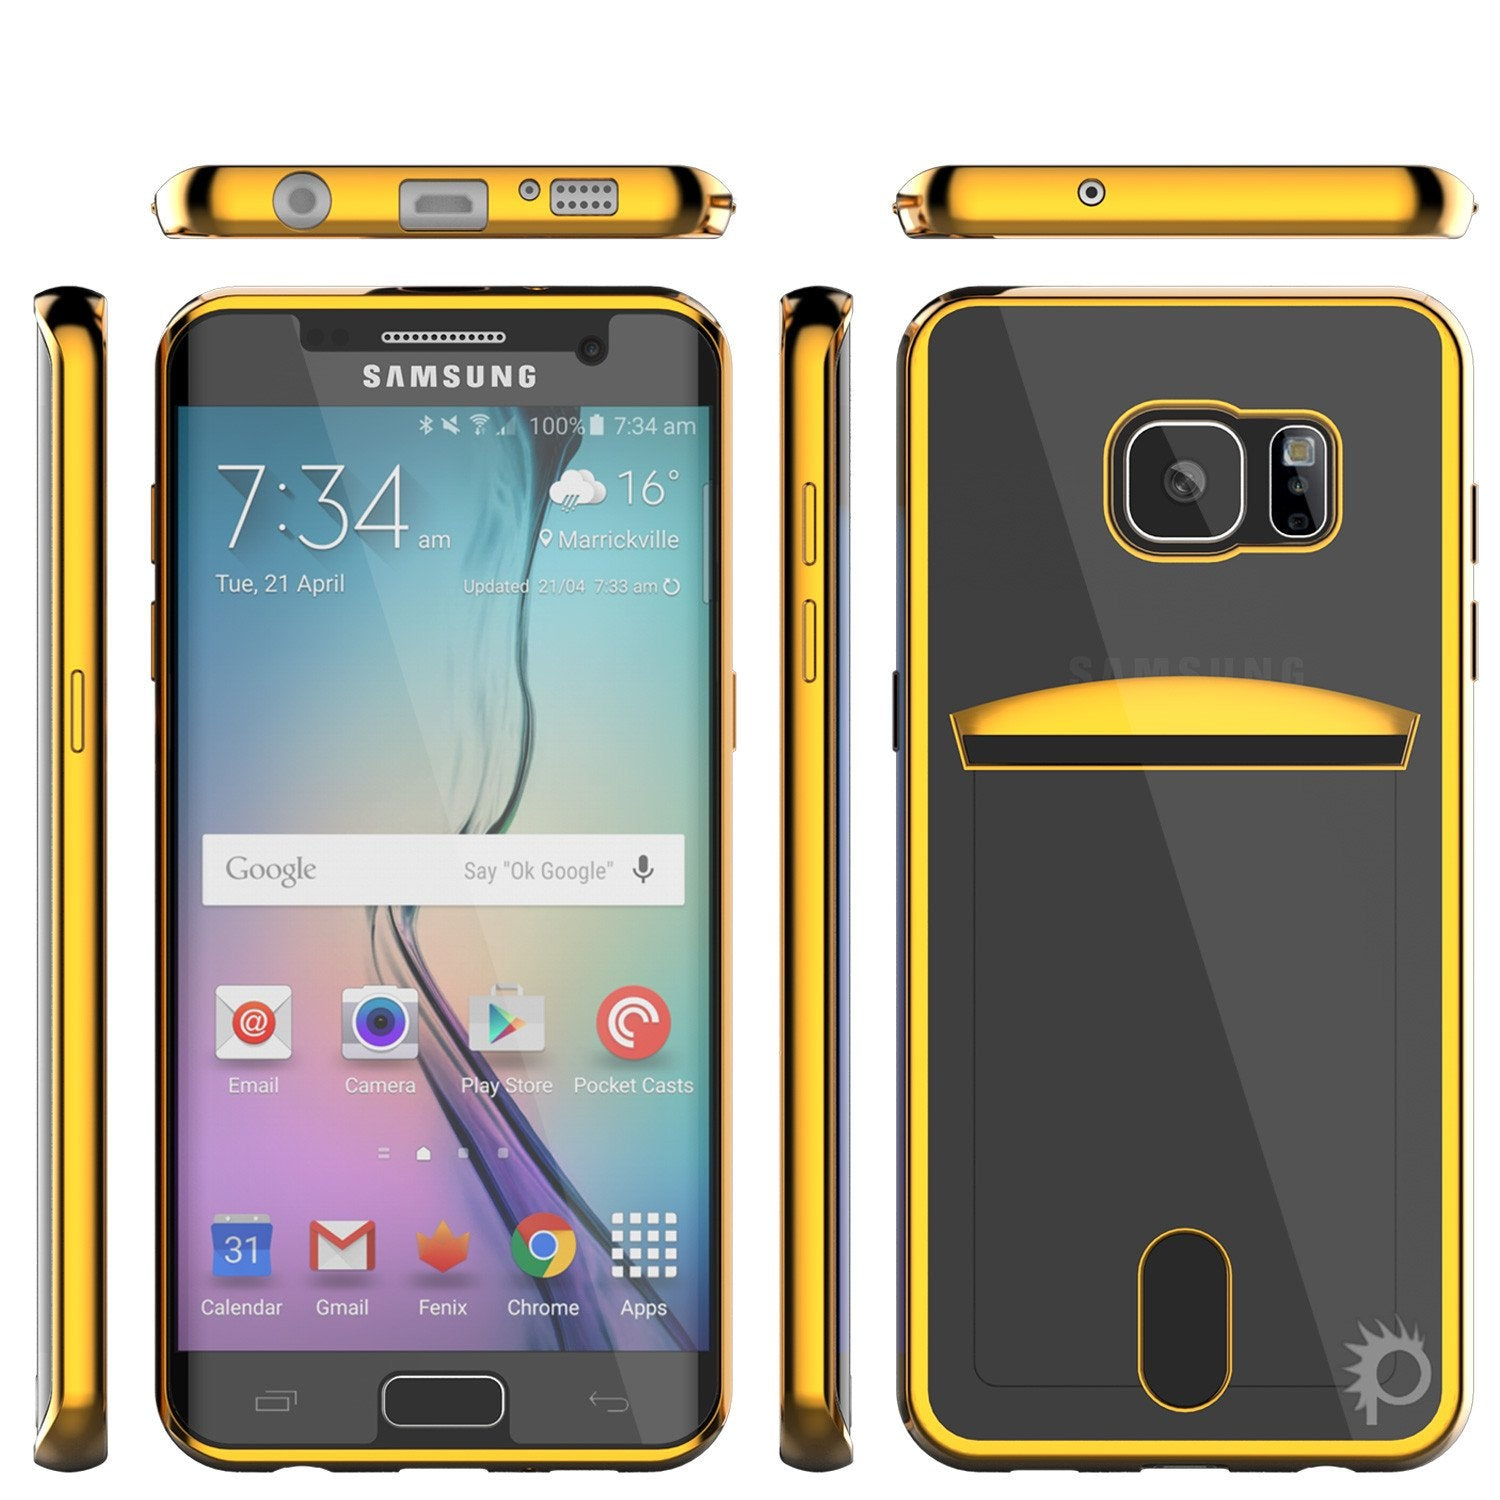 Galaxy S6 Case, PUNKCASE® LUCID Gold Series | Card Slot | SHIELD Screen Protector | Ultra fit - PunkCase NZ